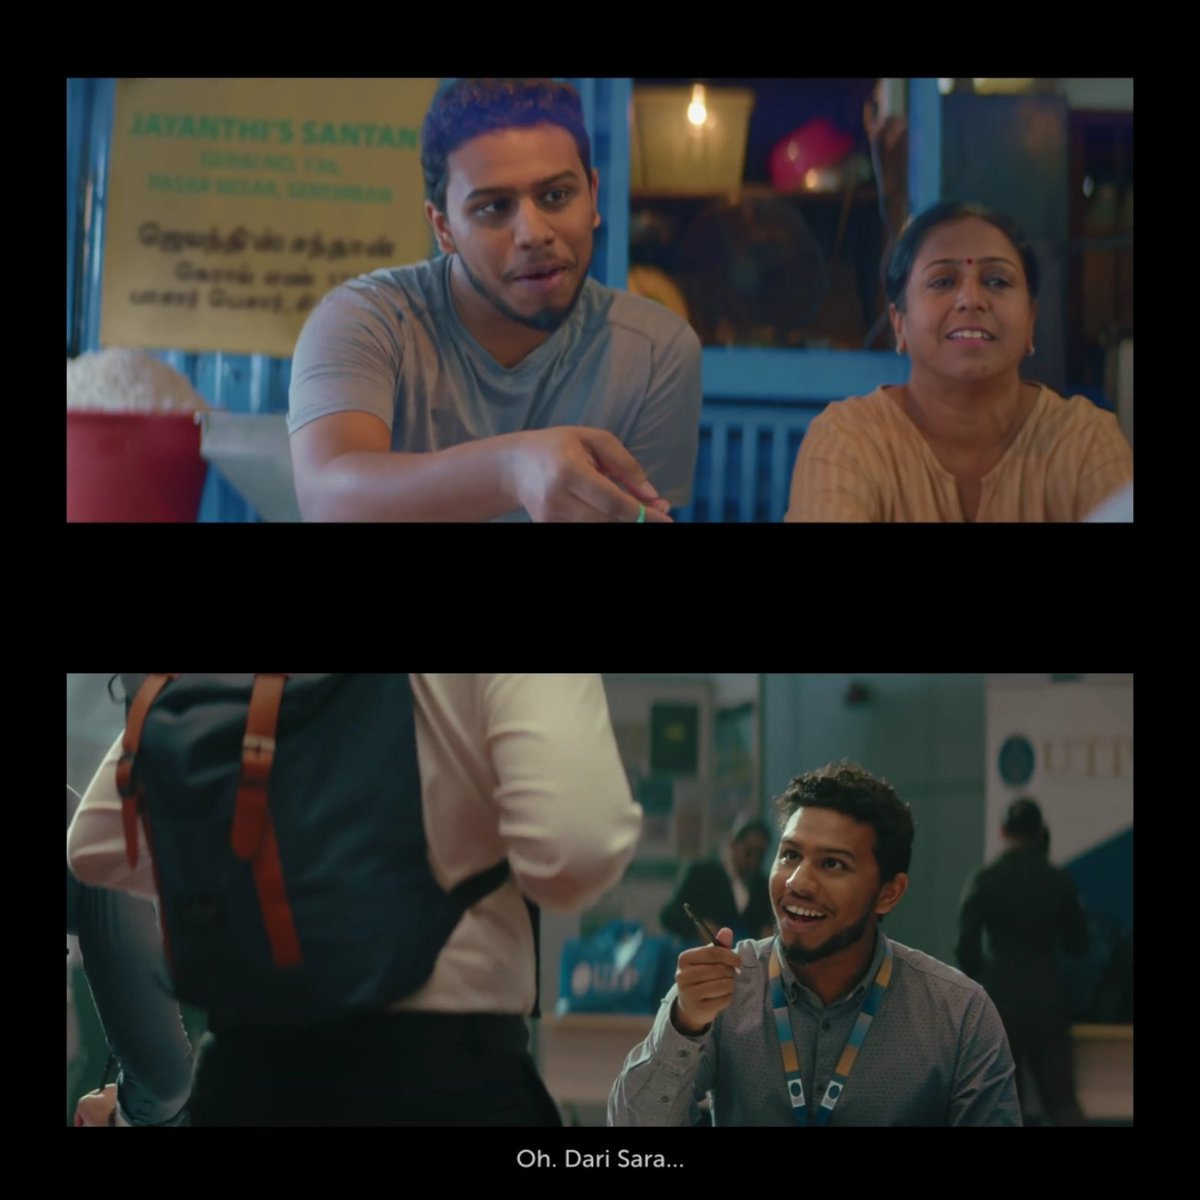 """This Kumar guy apparently on a holiday in Hari Raya ad, want to """"merisik"""", appeared in merdeka ad helping Roger in the registration part, could be a senior in UTP. Not surprised this year 2019 Deepavali ad will feature Kumar and Jayanthi. #petronas <br>http://pic.twitter.com/D5RQtc5x6S"""